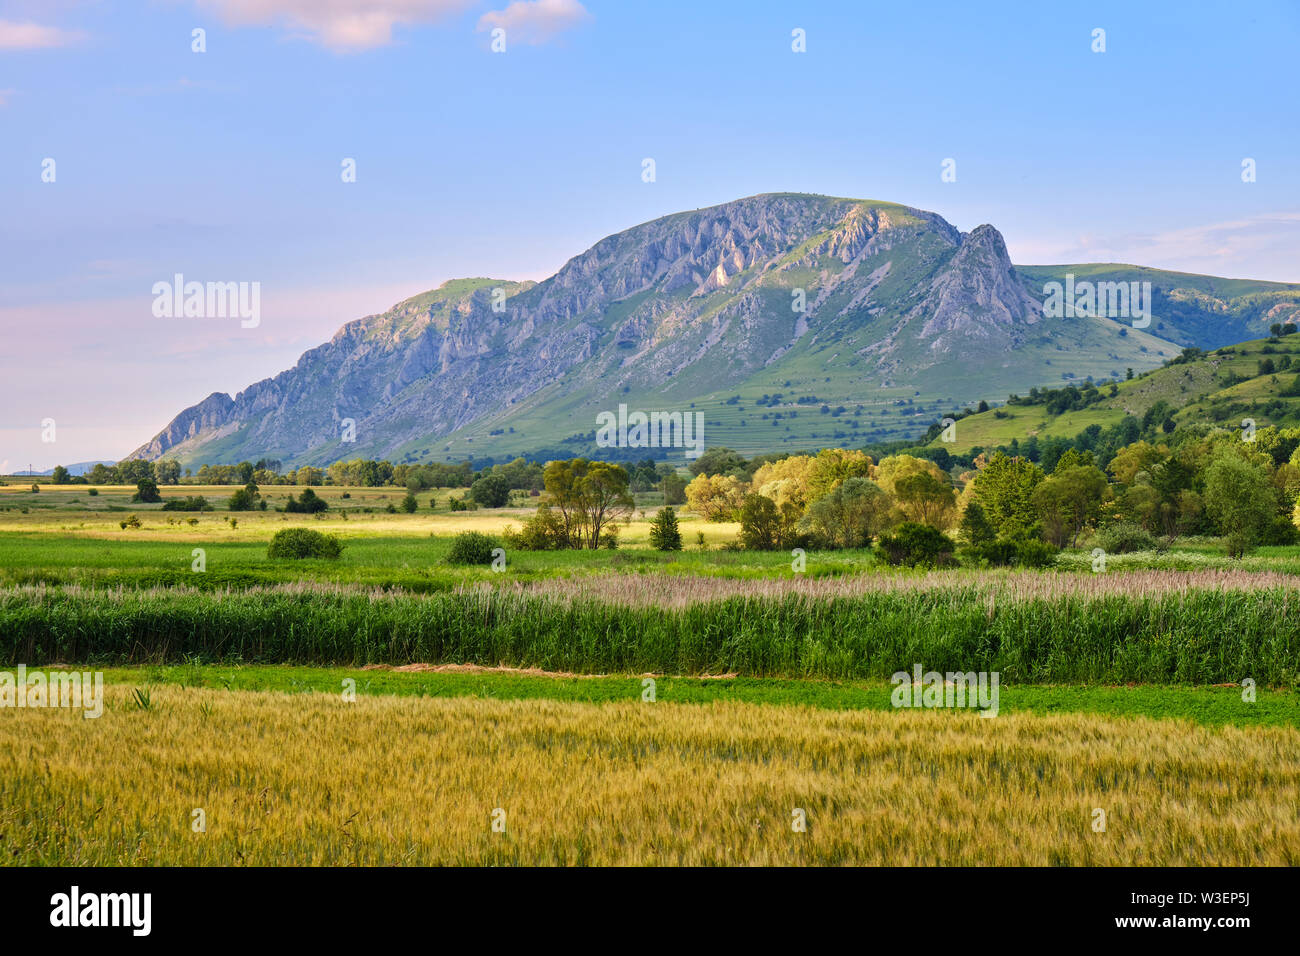 Coltii Trascaului (left) and Piatra Secuiului (right), part of Trascau mountains (Carpathians) - wide view in the warm evening sunlight. - Stock Image